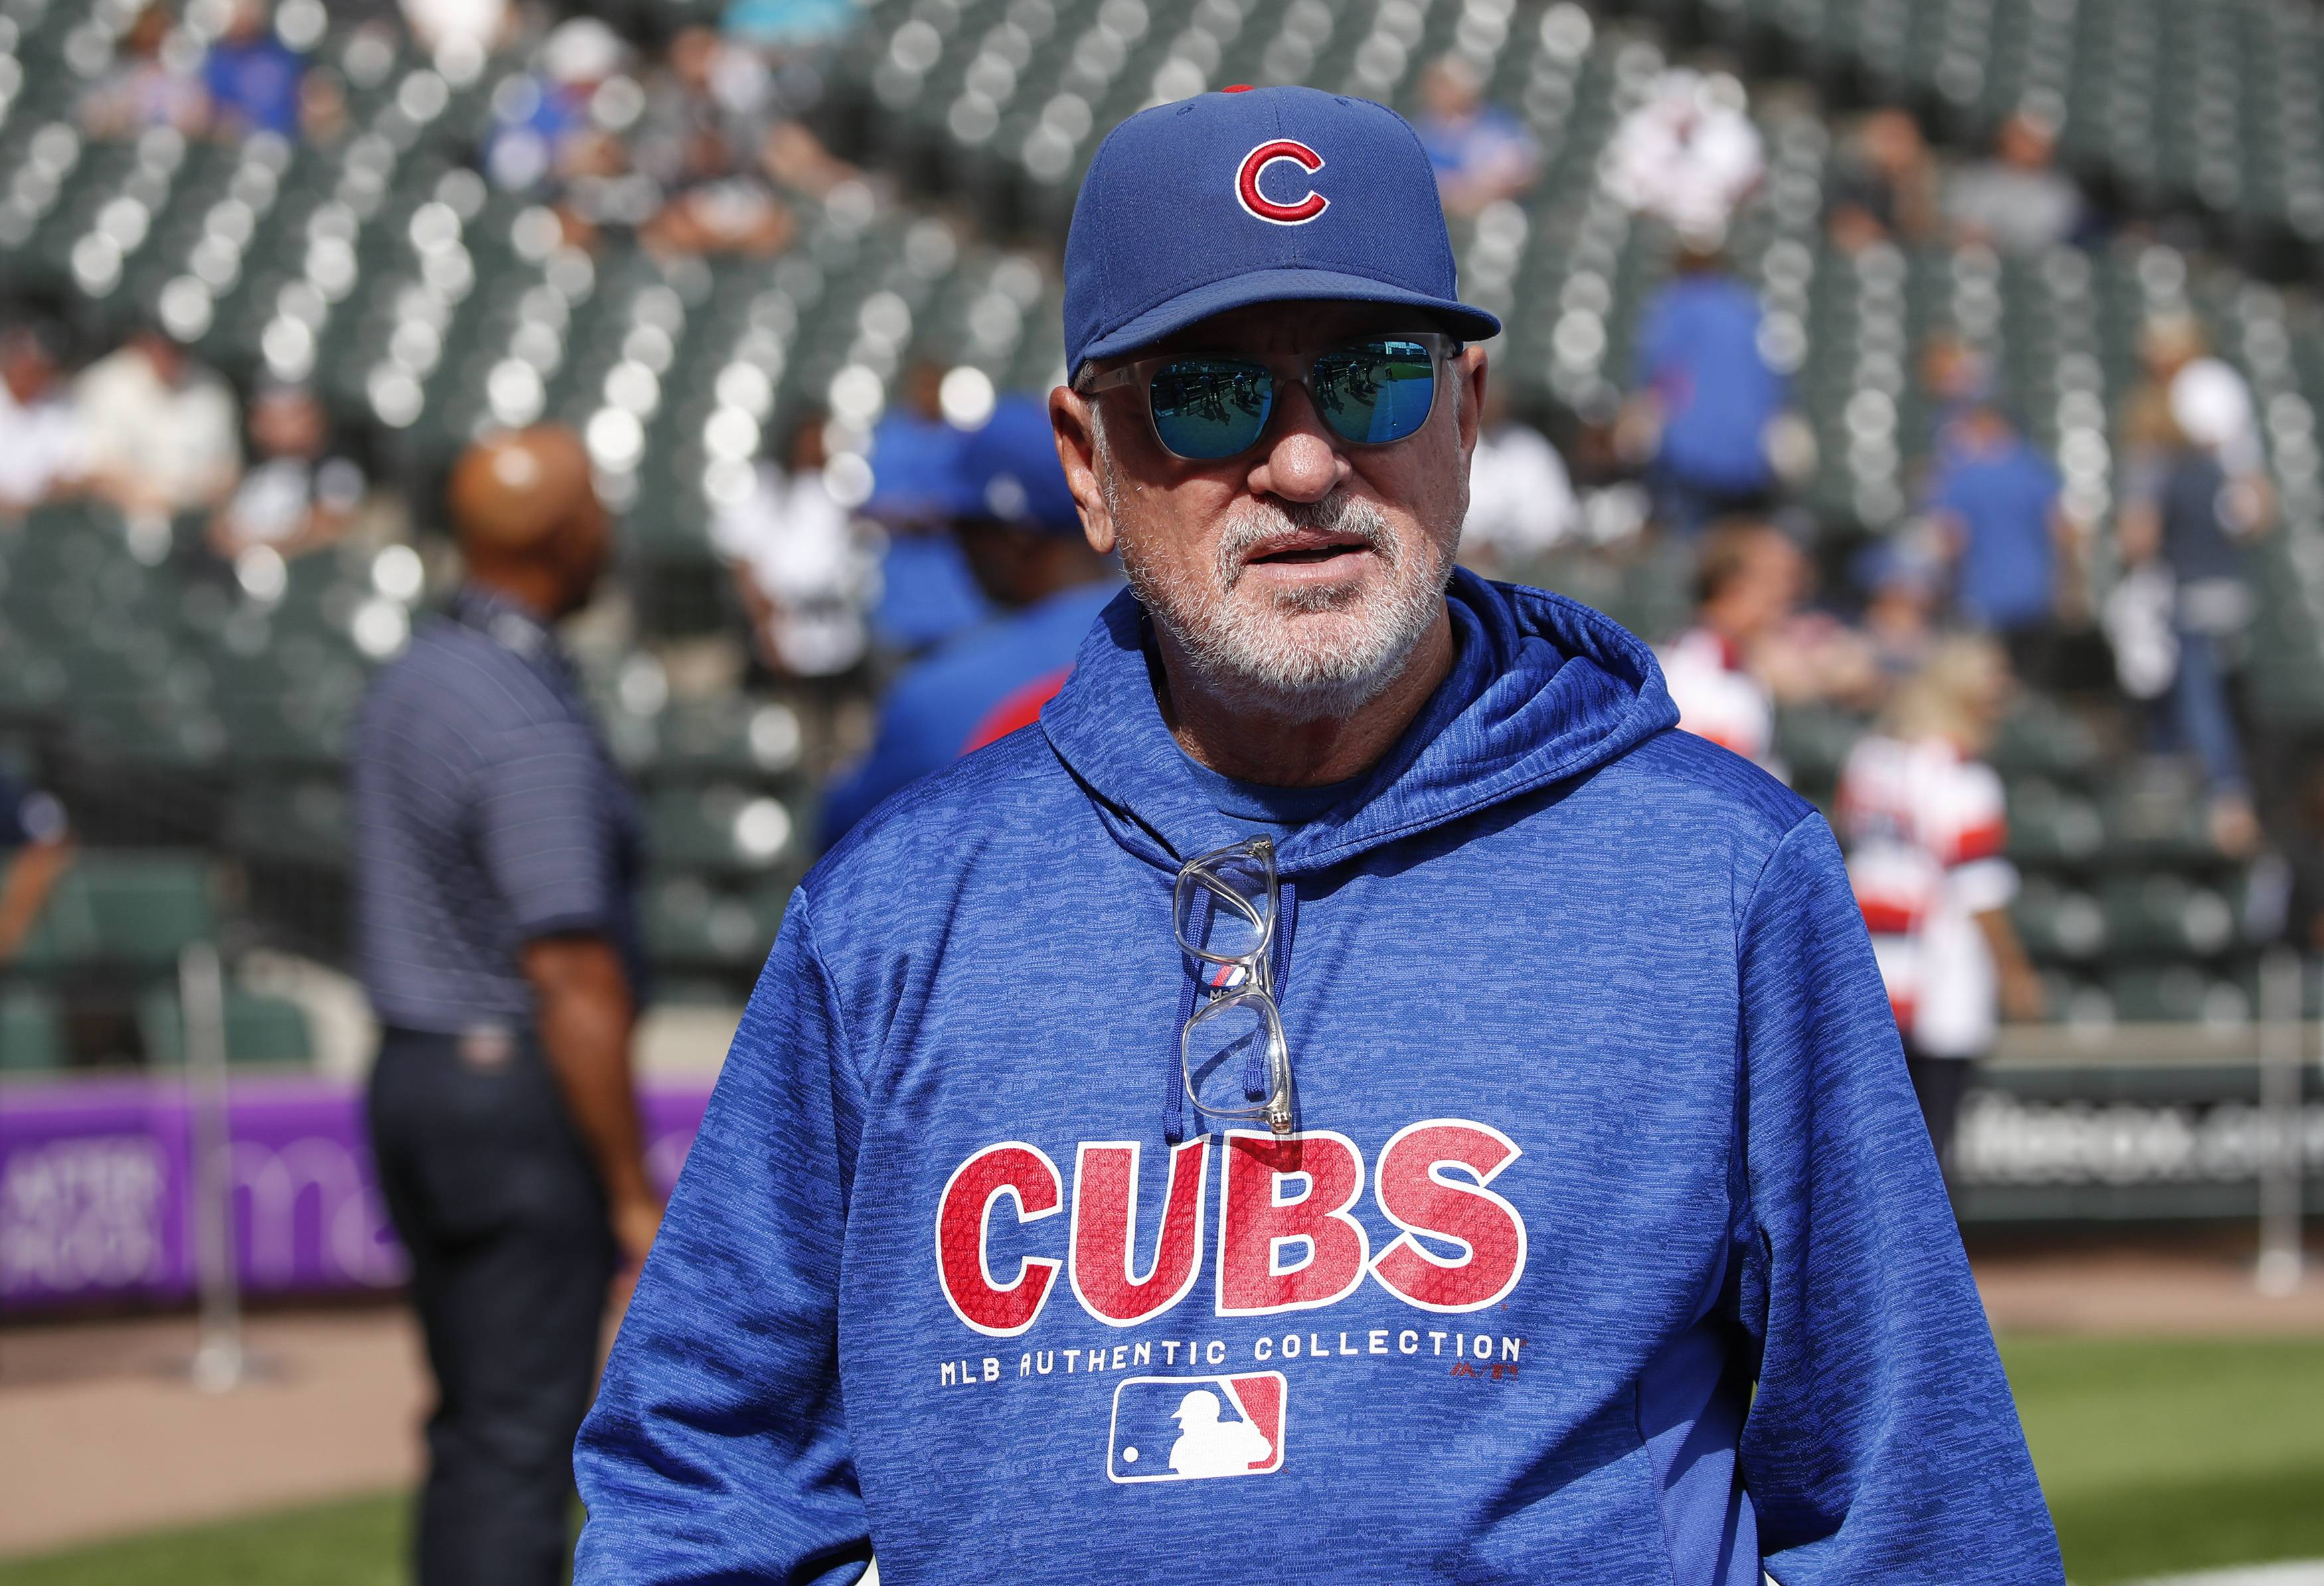 Chicago Cubs manager Joe Maddon met the media Tuesday at the winter meetings, and he did not disappoint. Maddon says he embraces the challenges ahead after the Cubs were bounced out of the 2018 playoffs in the wild-card game.